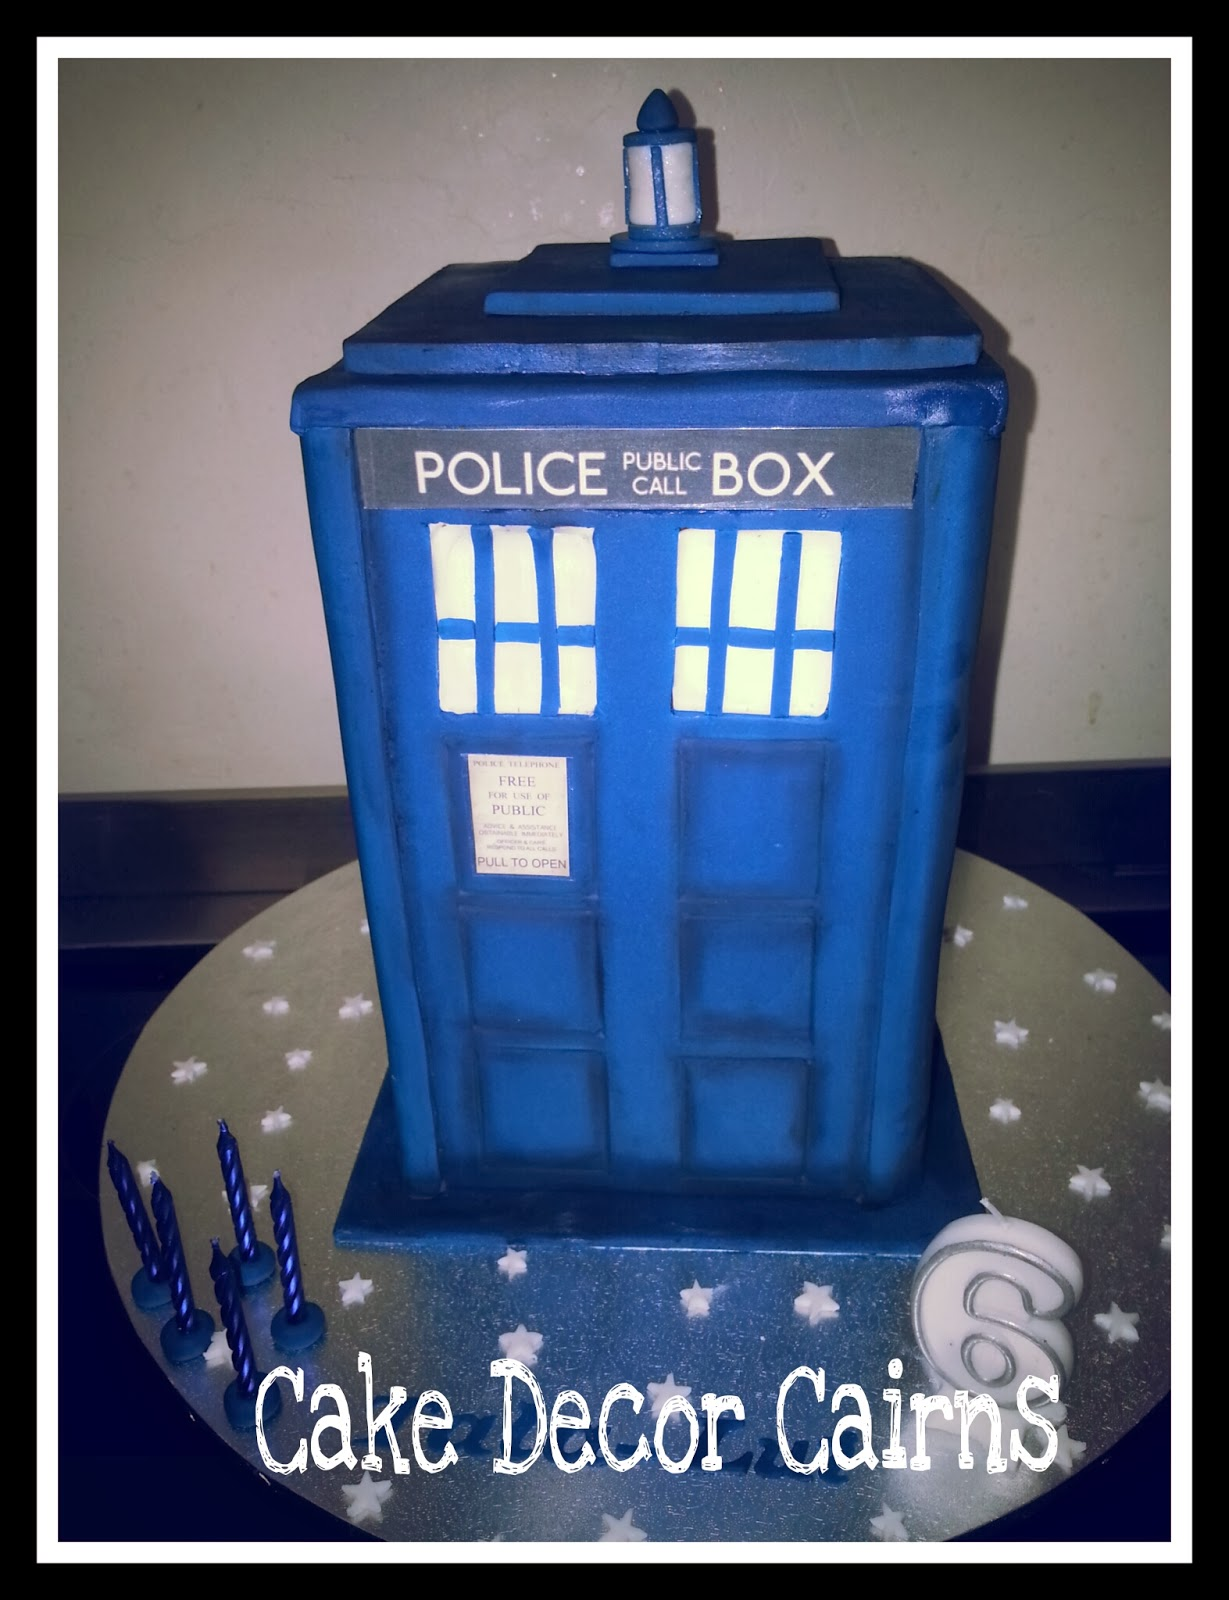 Cake Decor in Cairns Doctor Who Tardis Cake How to make